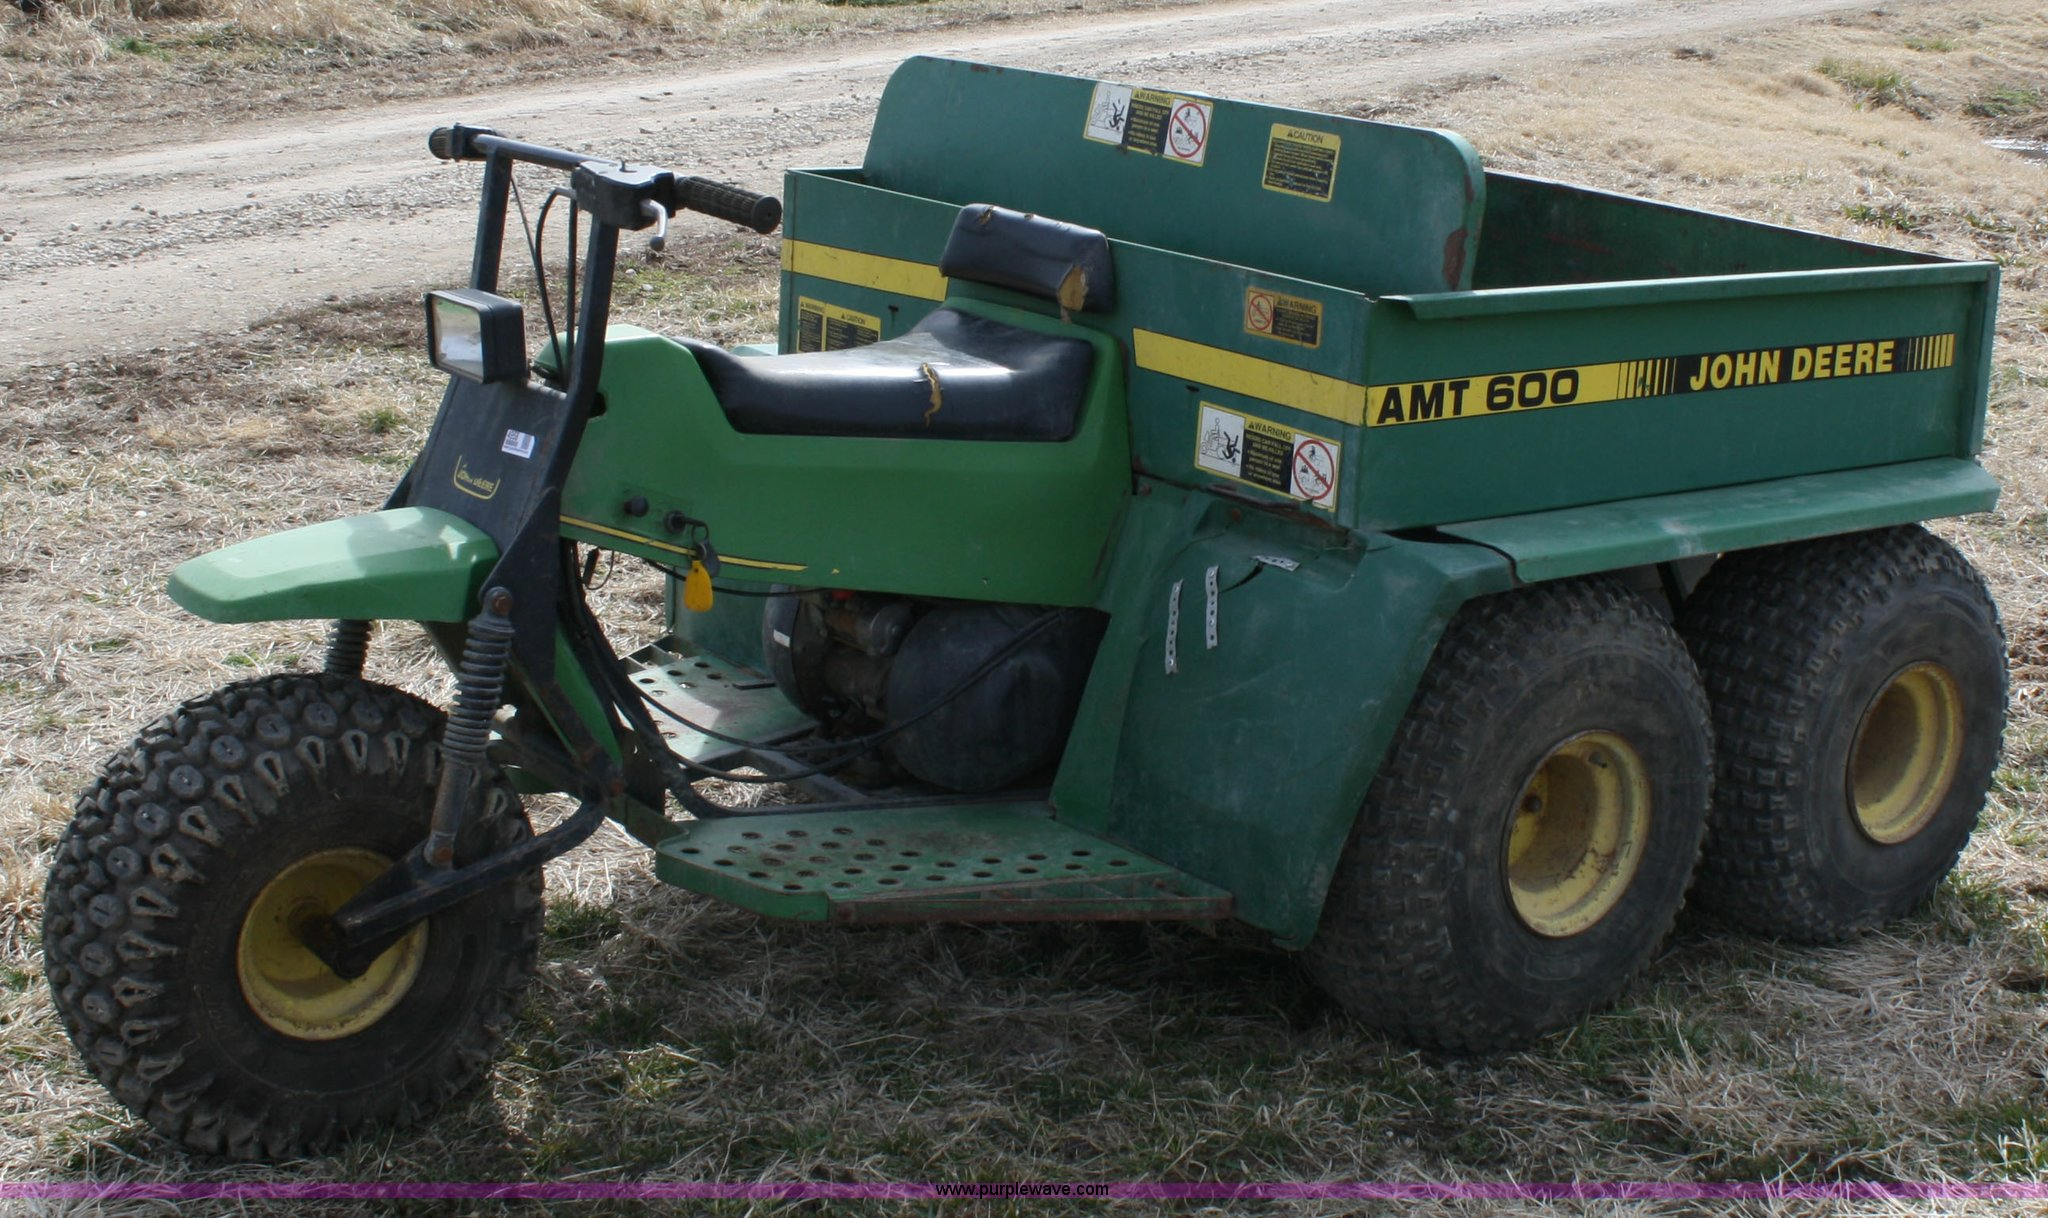 John Deere Gator Amt 600 Brake Parts Best 2017 Wiring Diagram Hpx Schematic Explained Diagrams Rh Dmdelectro Co New Wood Hauler Just Picked Up An Old 5 Wheel